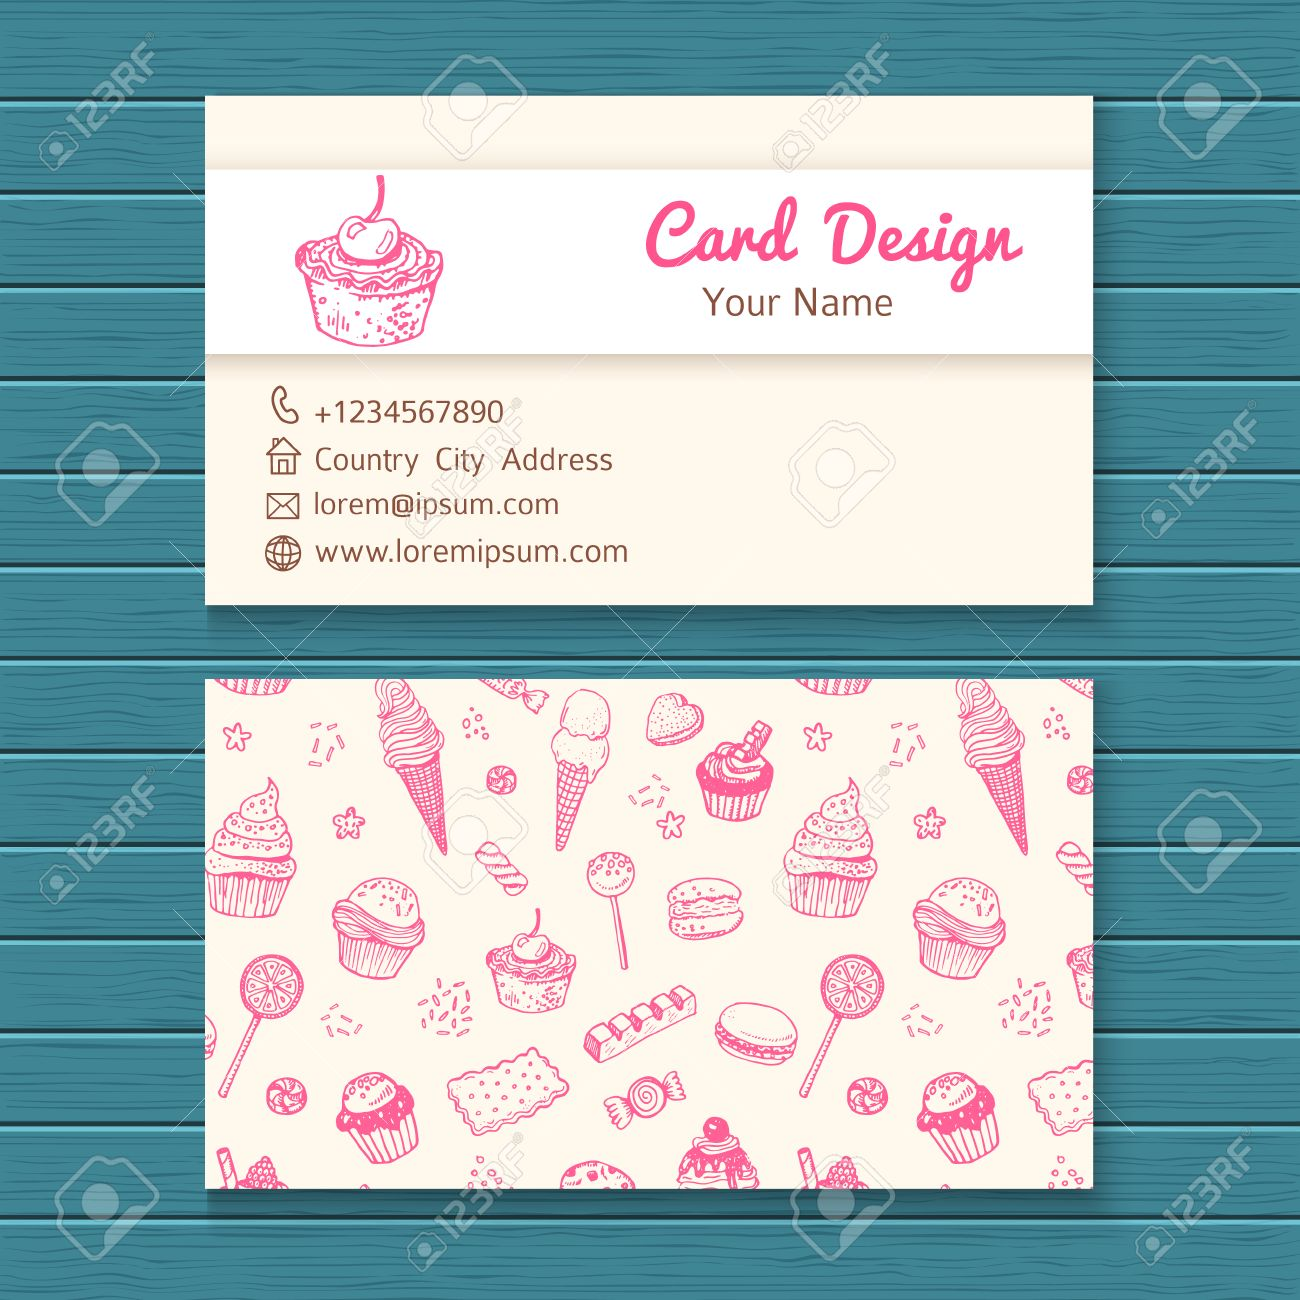 Free Business Cards Cake Gallery - Card Design And Card Template